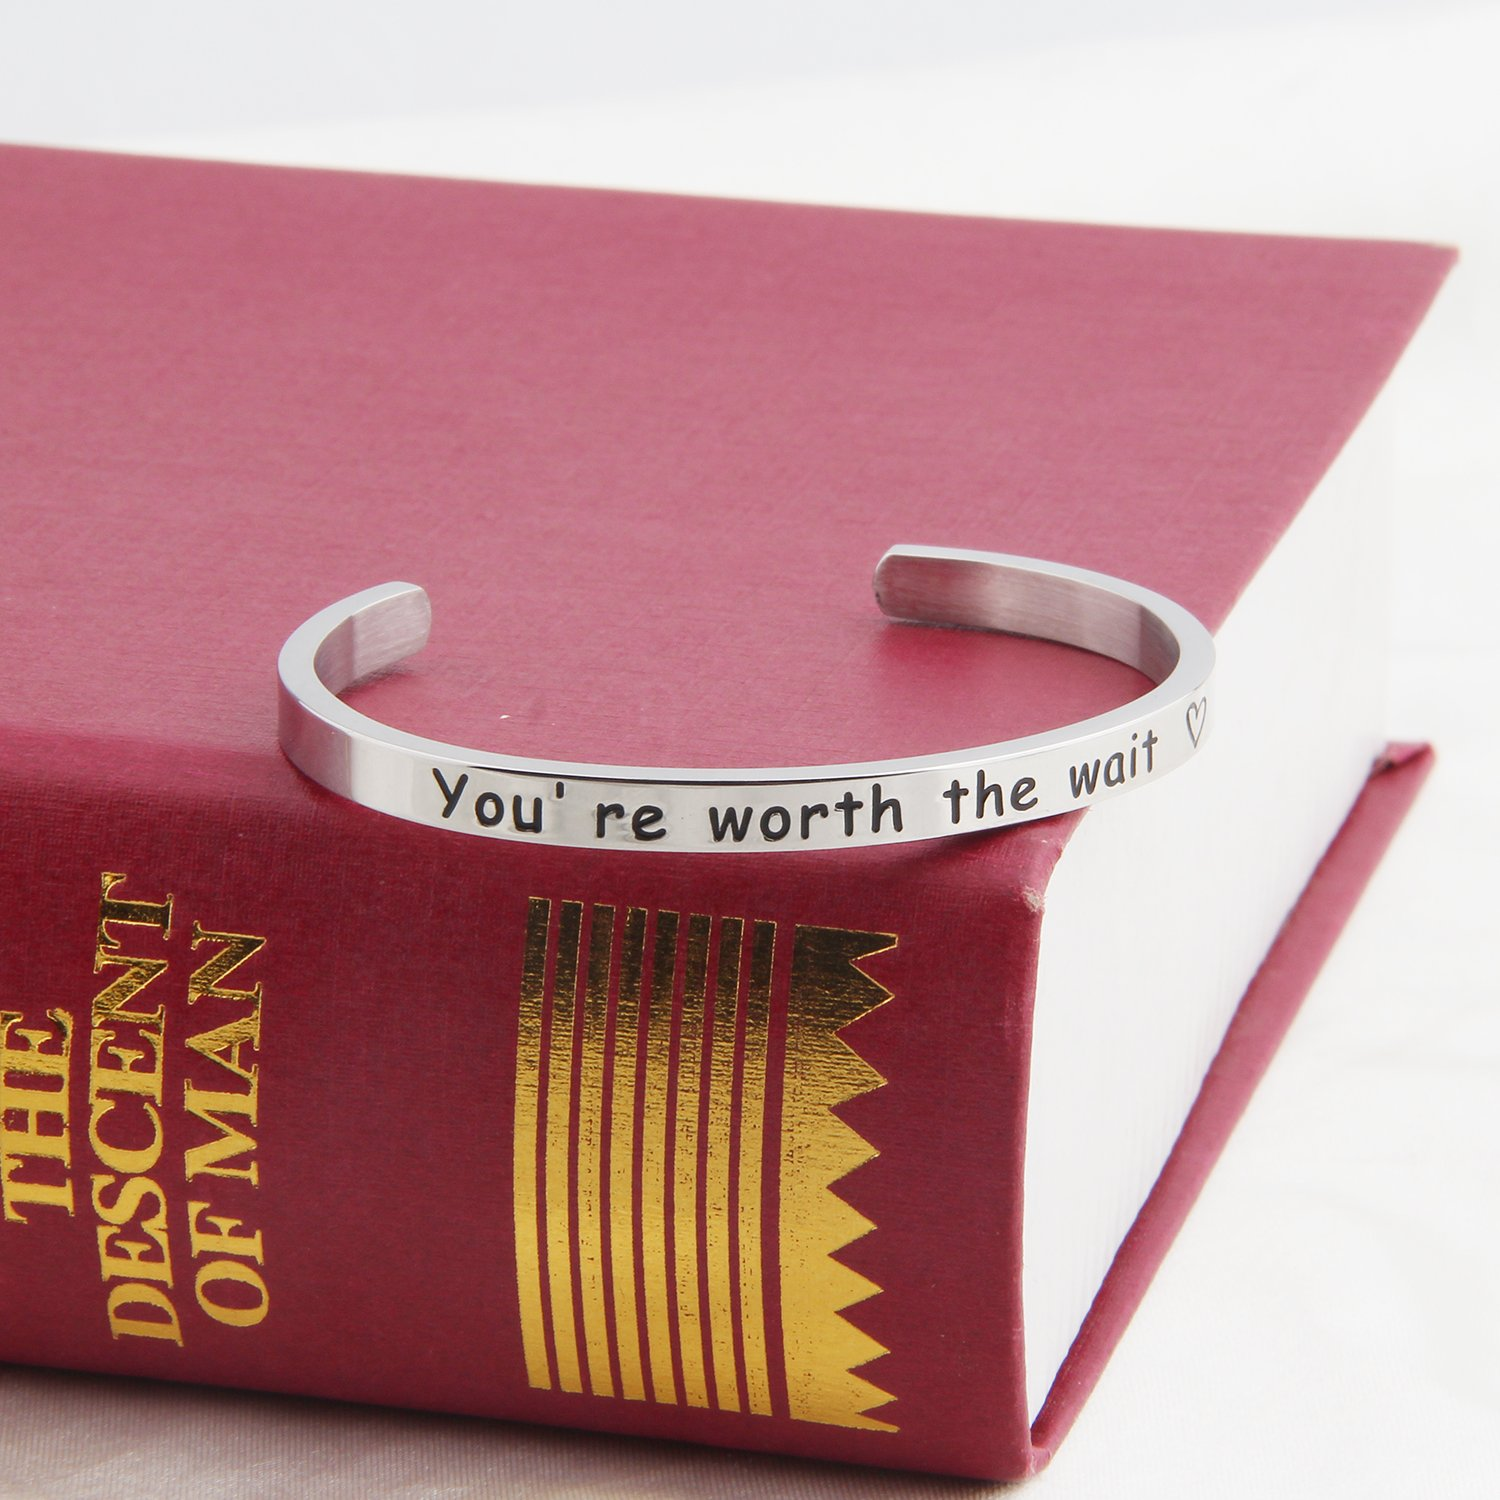 ENSIANTH Youre Worth The Wait Cuff Bracelet Long Distance Relationship Bracelet Purity Jewelry Girlfriends Gift